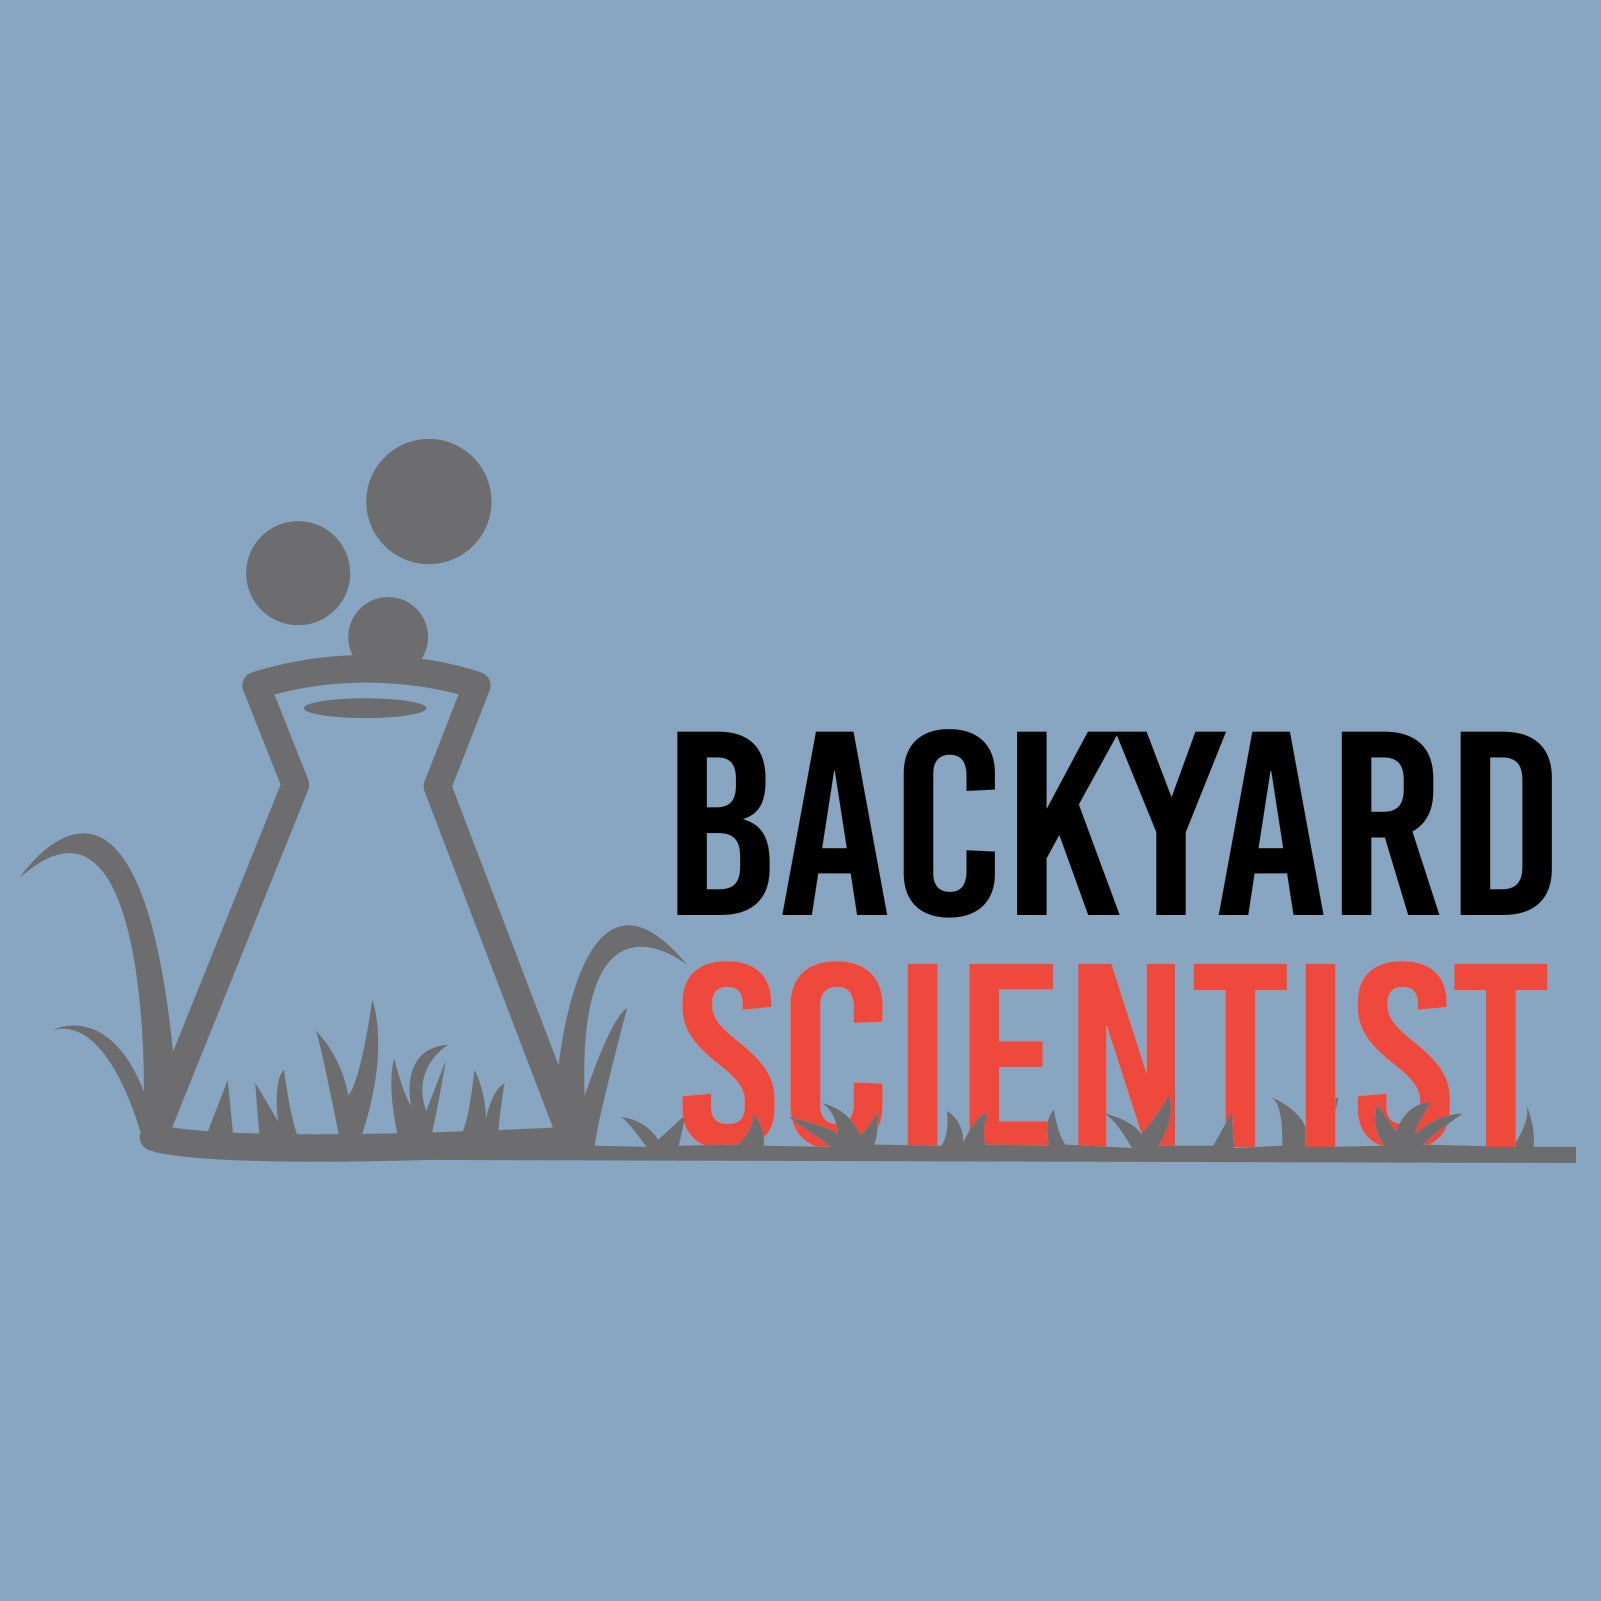 Backyard Scientist - Light Blue